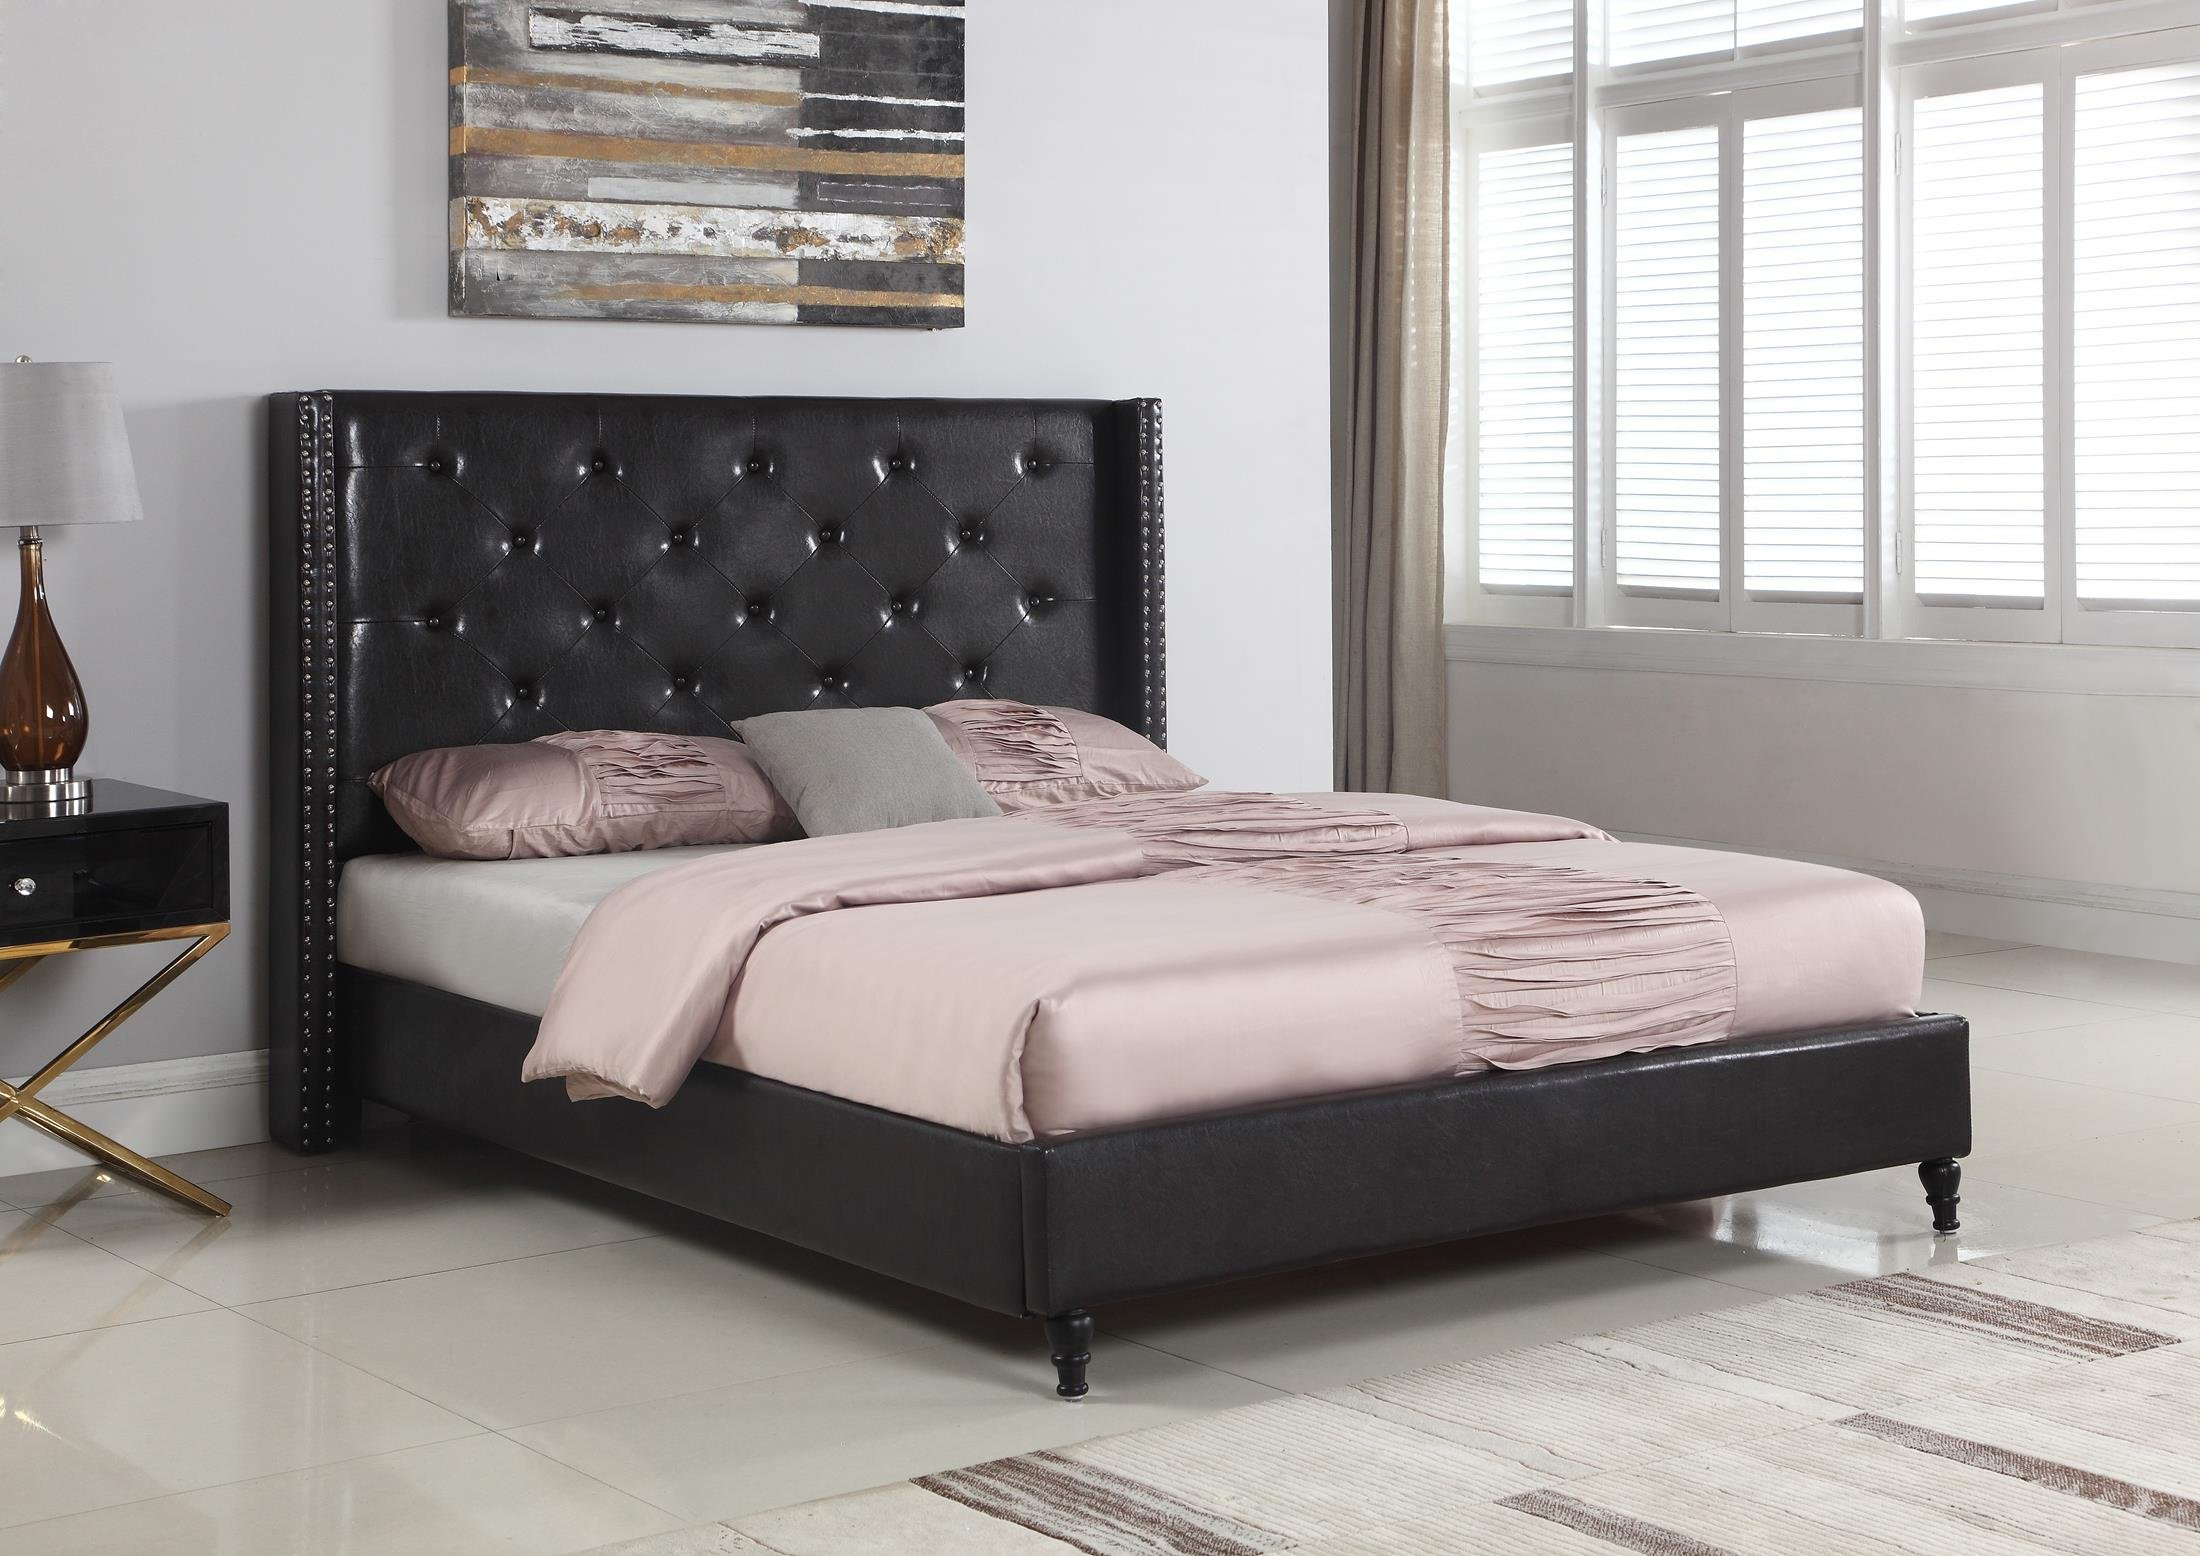 Home Life Premiere Classics Leather Black Tufted with Nails Leather 51'' Tall Headboard Platform Bed with Slats Full - Complete Bed 5 Year Warranty Included 007